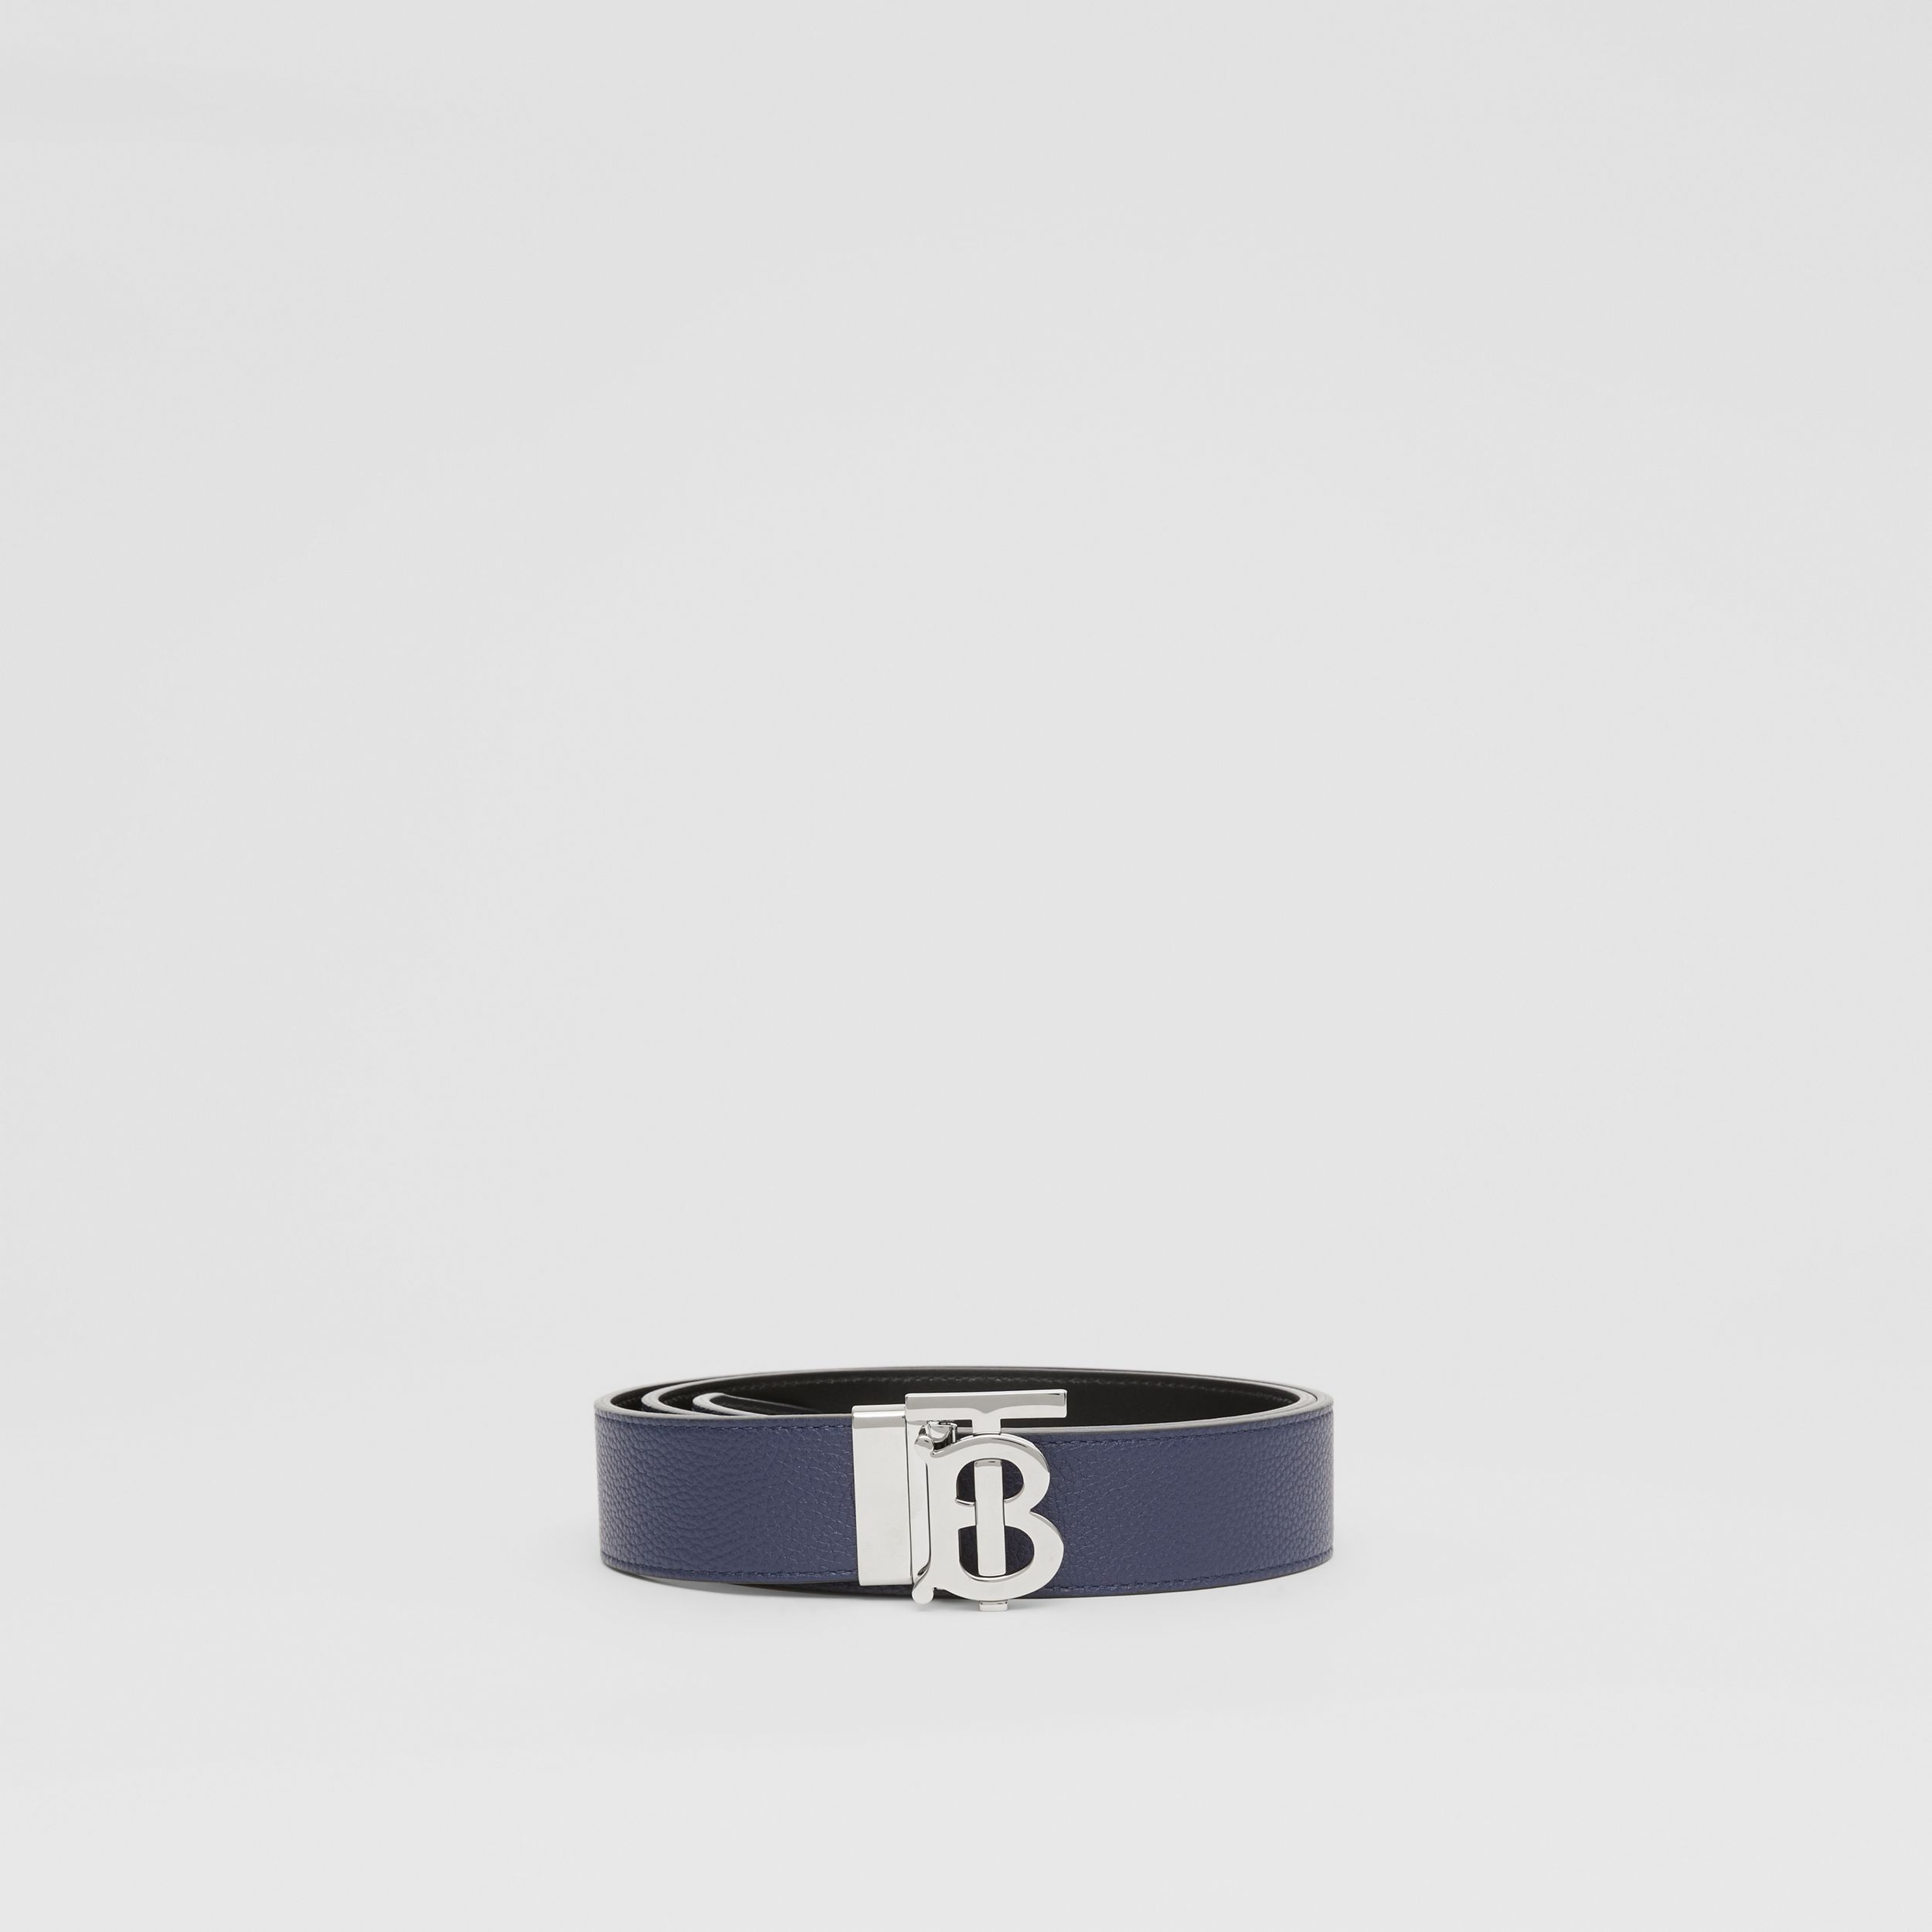 Reversible Monogram Motif Leather Belt in Navy/black - Men | Burberry United Kingdom - 4